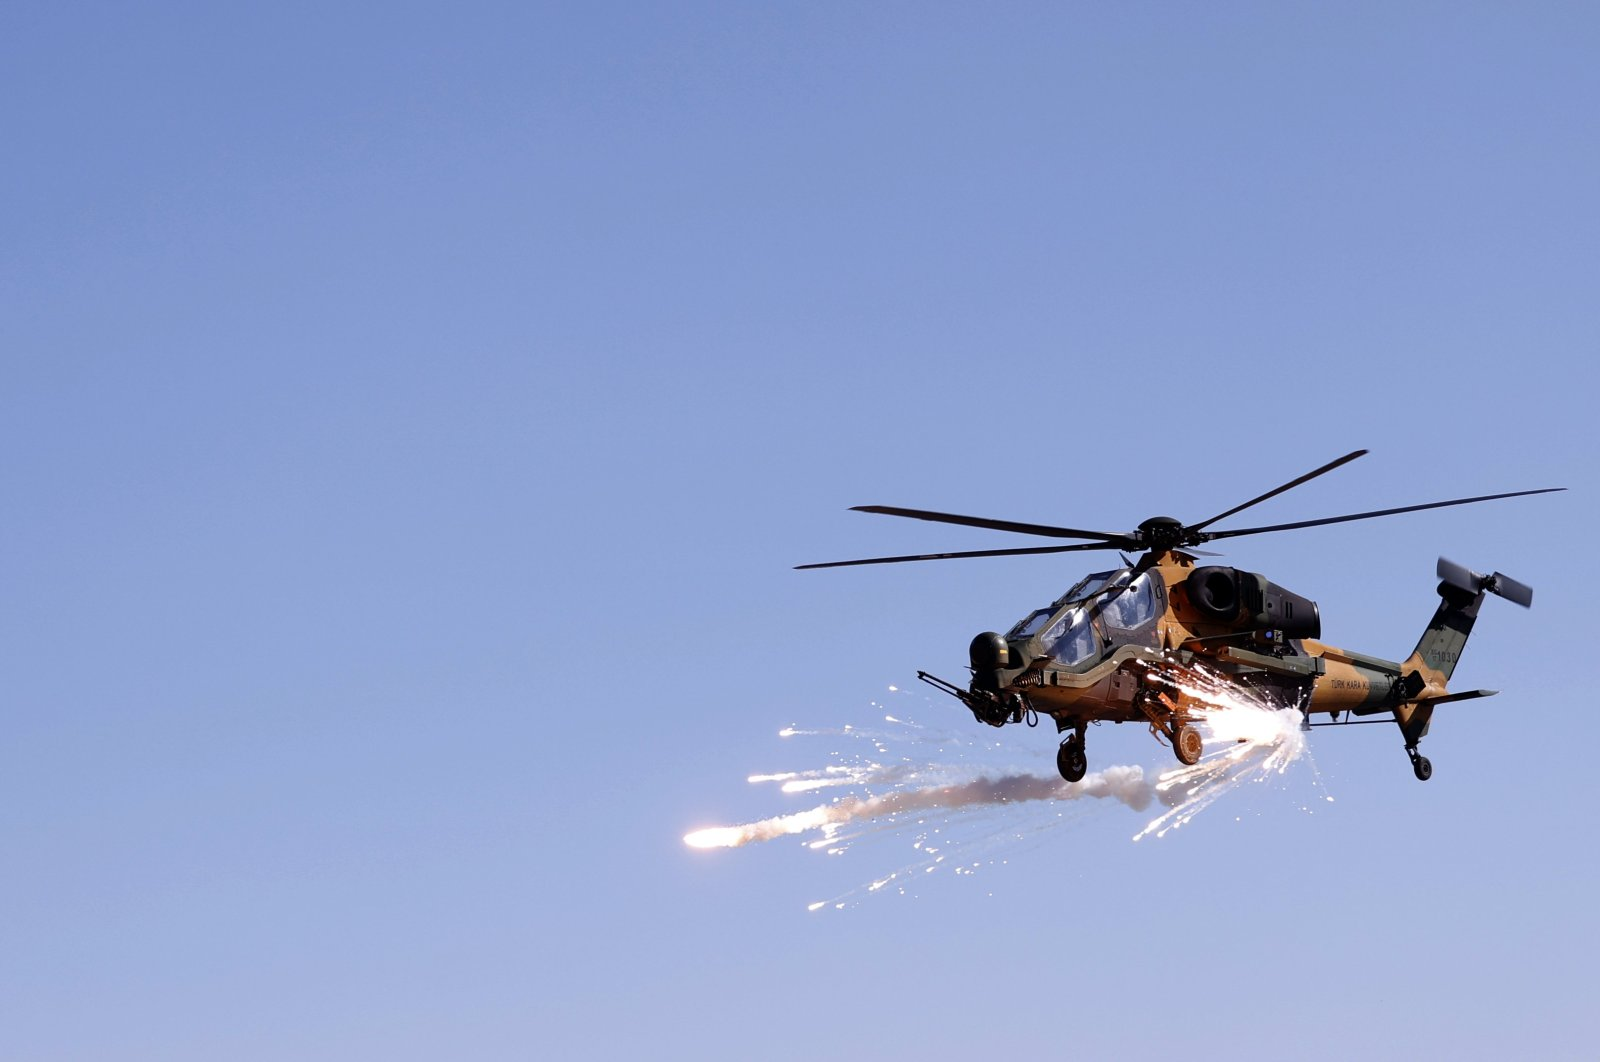 A Turkish military helicopter fires its weapons during a military exercise in Kars province, eastern Turkey, Feb. 12, 2021. (AA Photo)